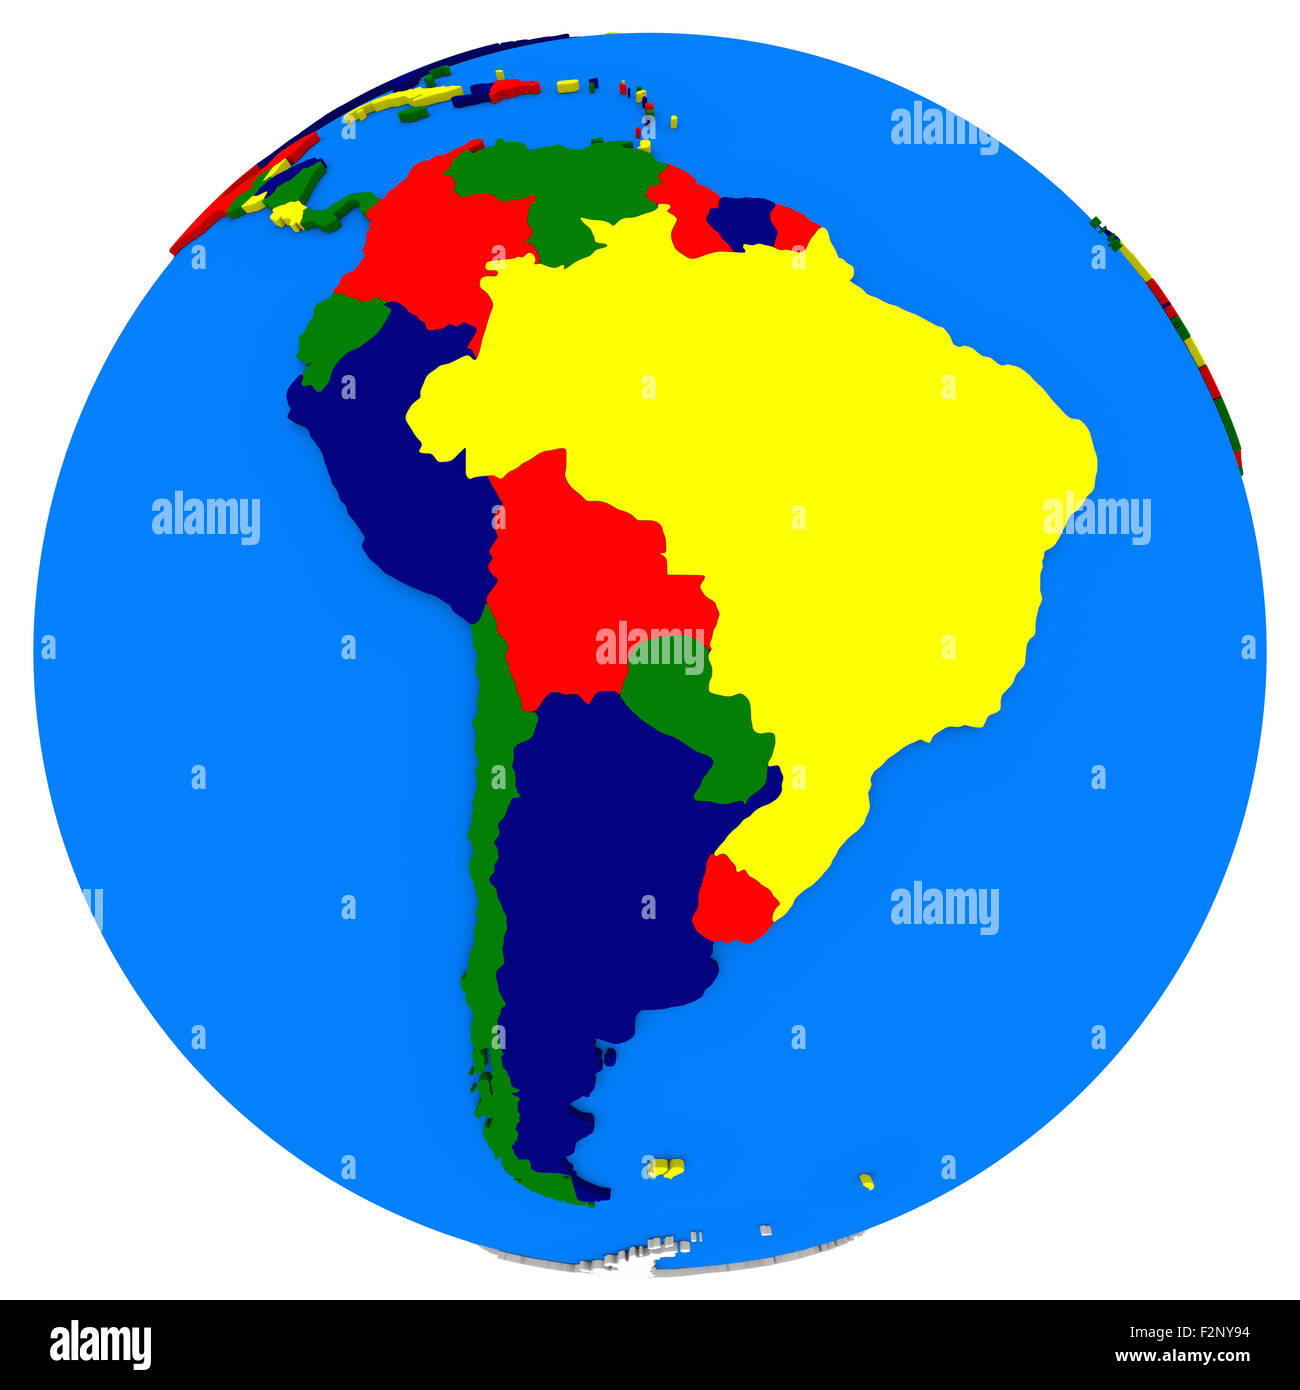 Political map of south america on globe illustration isolated on political map of south america on globe illustration isolated on white background gumiabroncs Choice Image